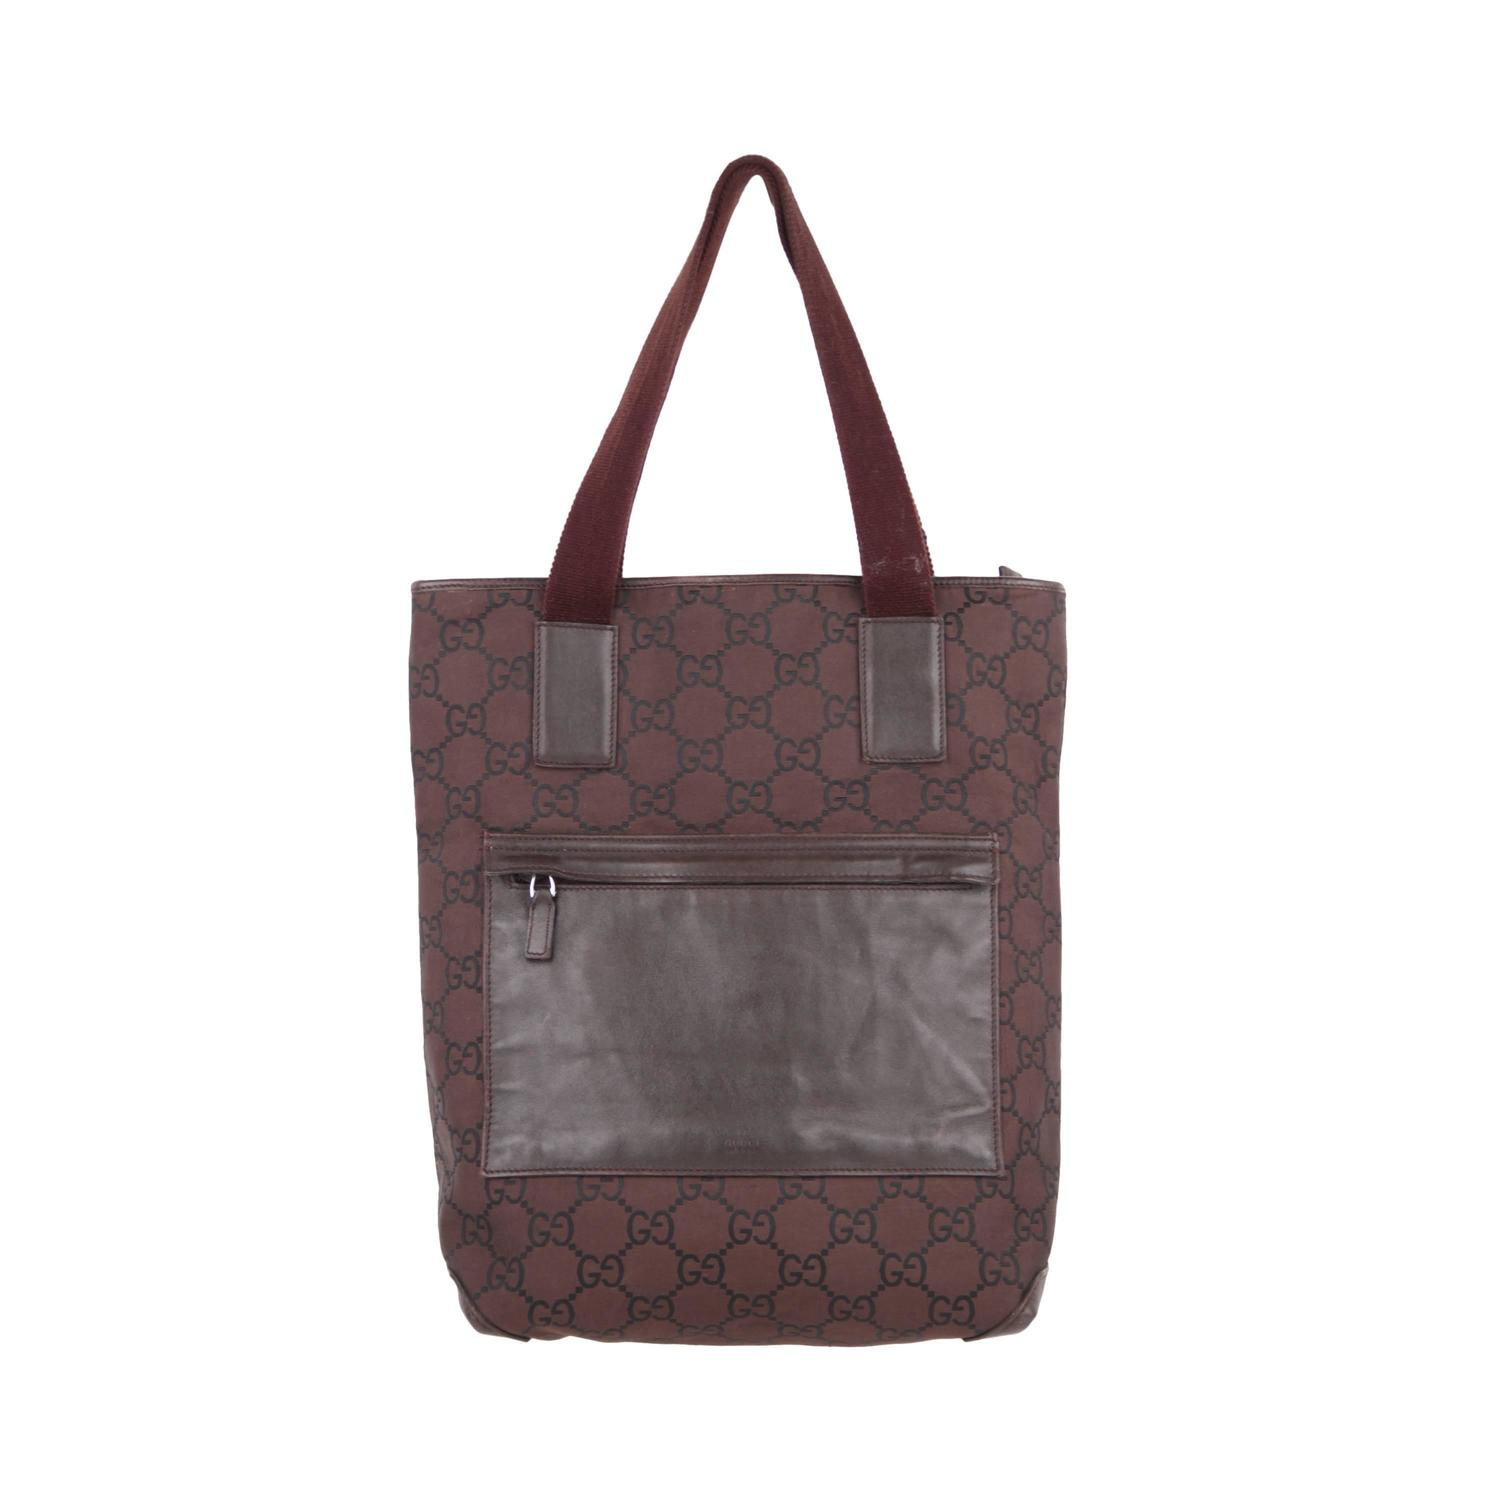 GUCCI Italian Brown GG MONOGRAM Canvas TOTE Handbag ...